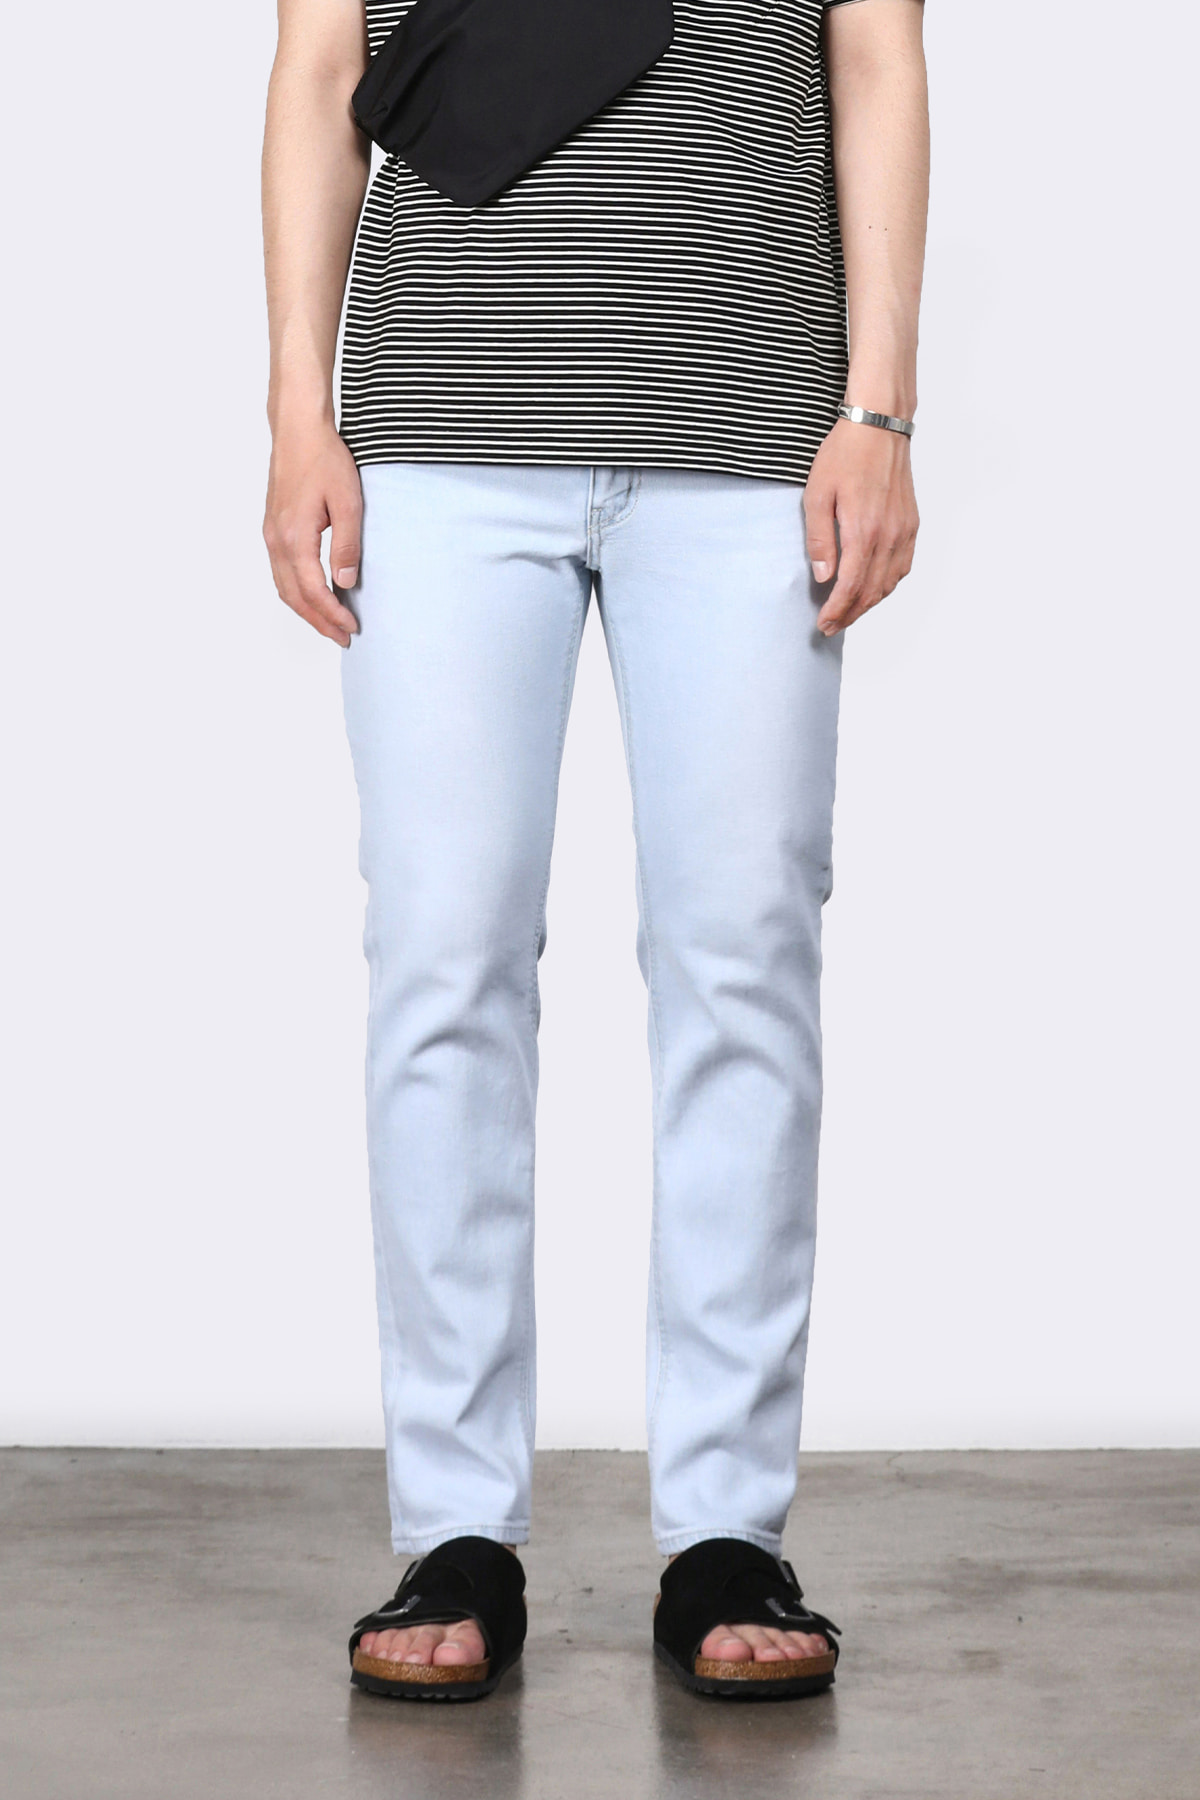 #0207 refined ice slim crop jeans